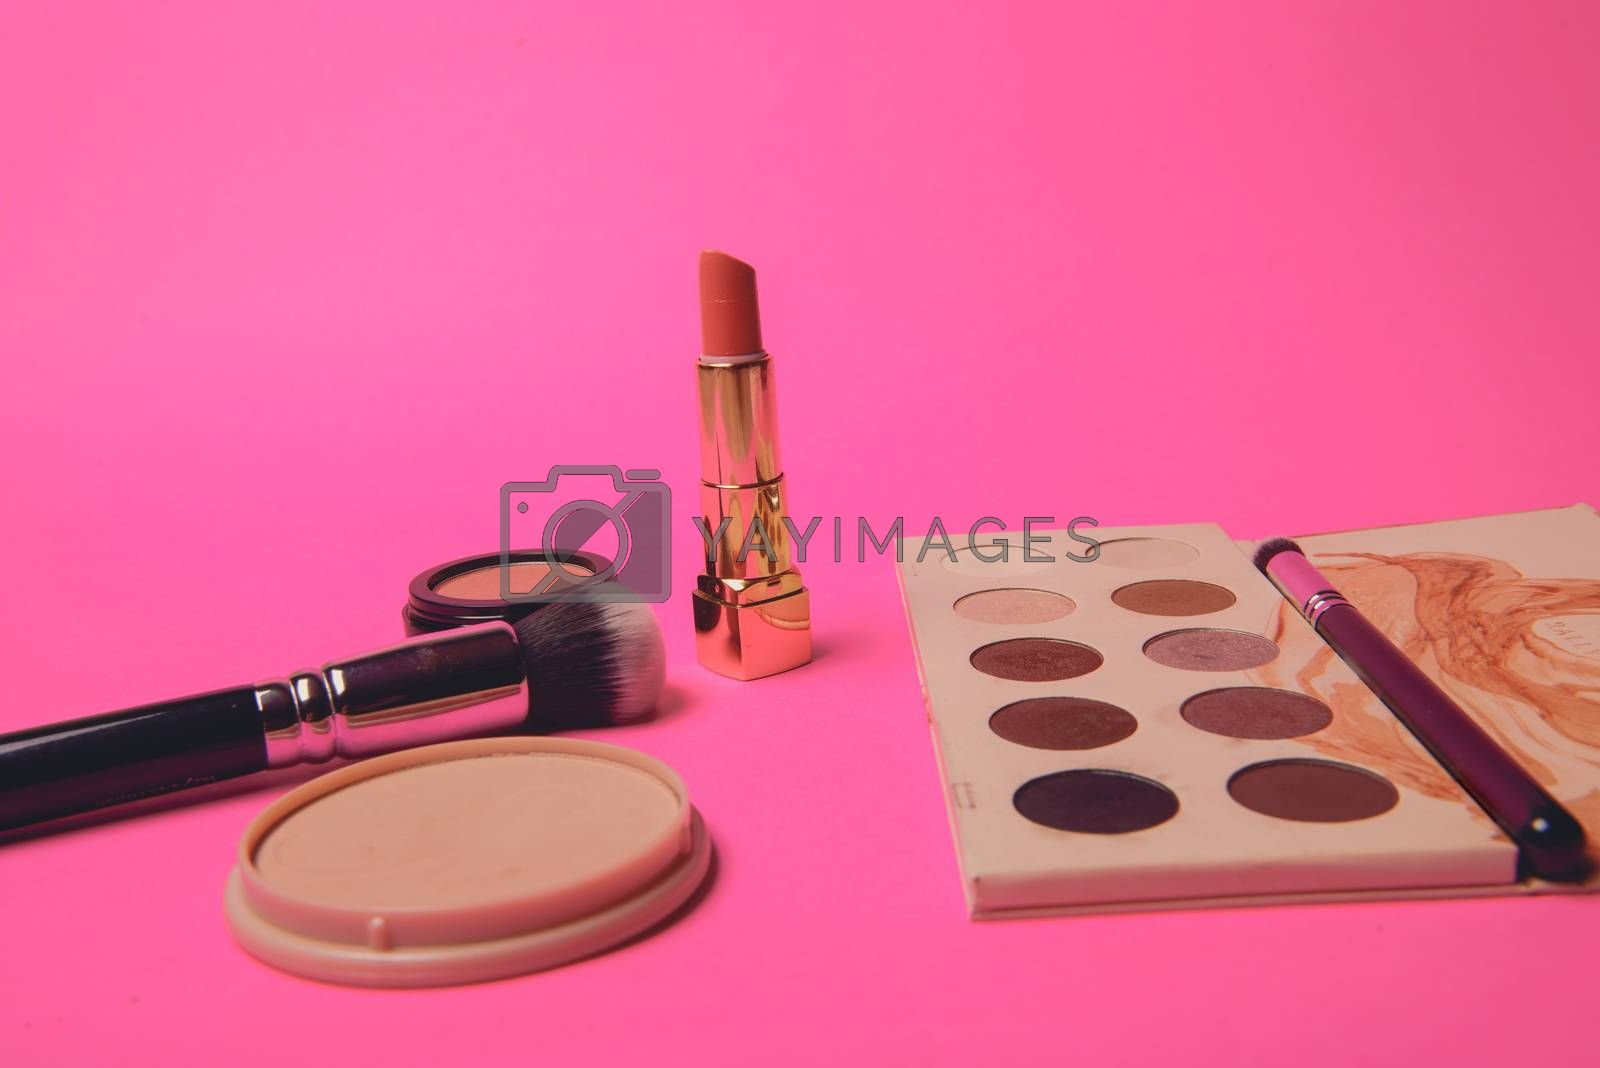 Palette of colorful eye shadows. Pink background.